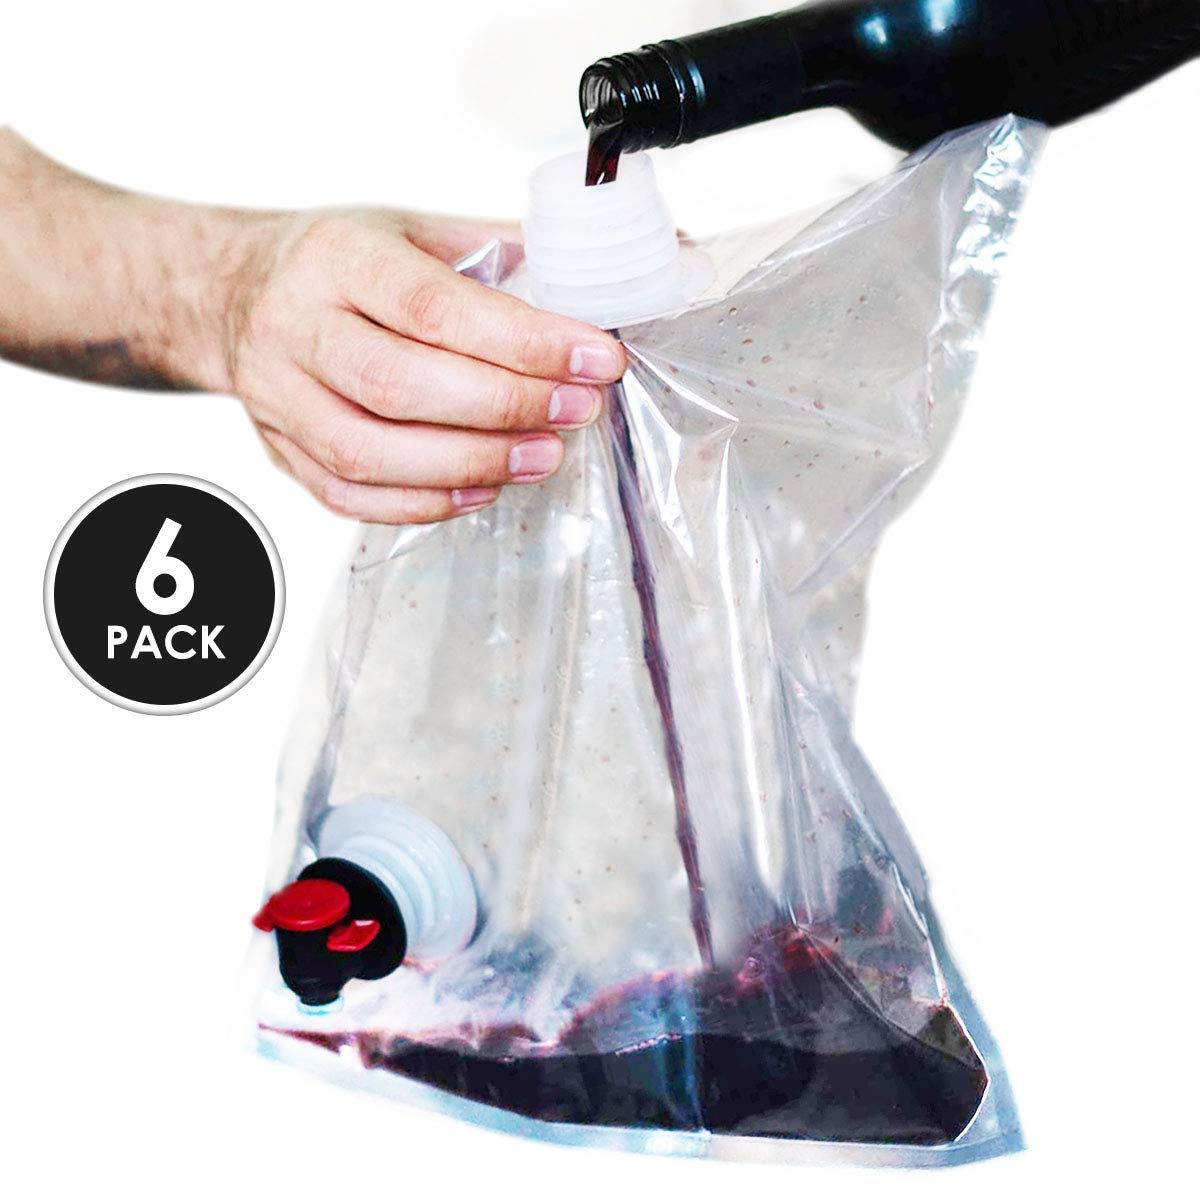 FILL IT!' Wine Baggies for use in 'BAG IT!' Wine Purse Bag (6 Pack)